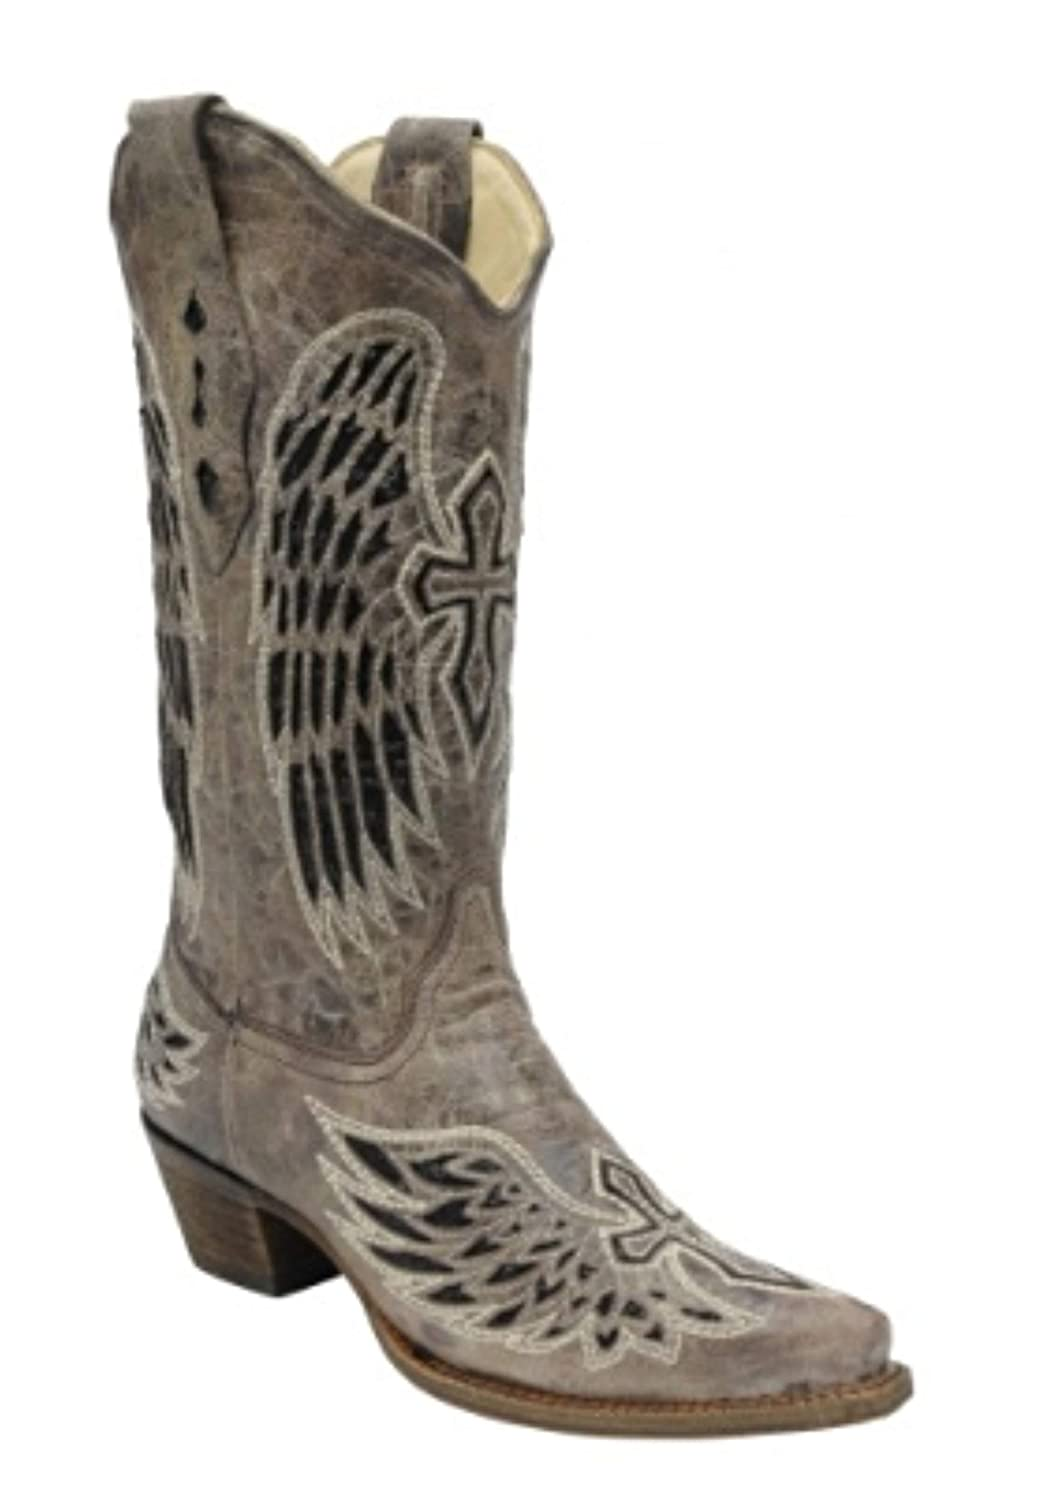 - Corral Wing & Cross Sequence Boots